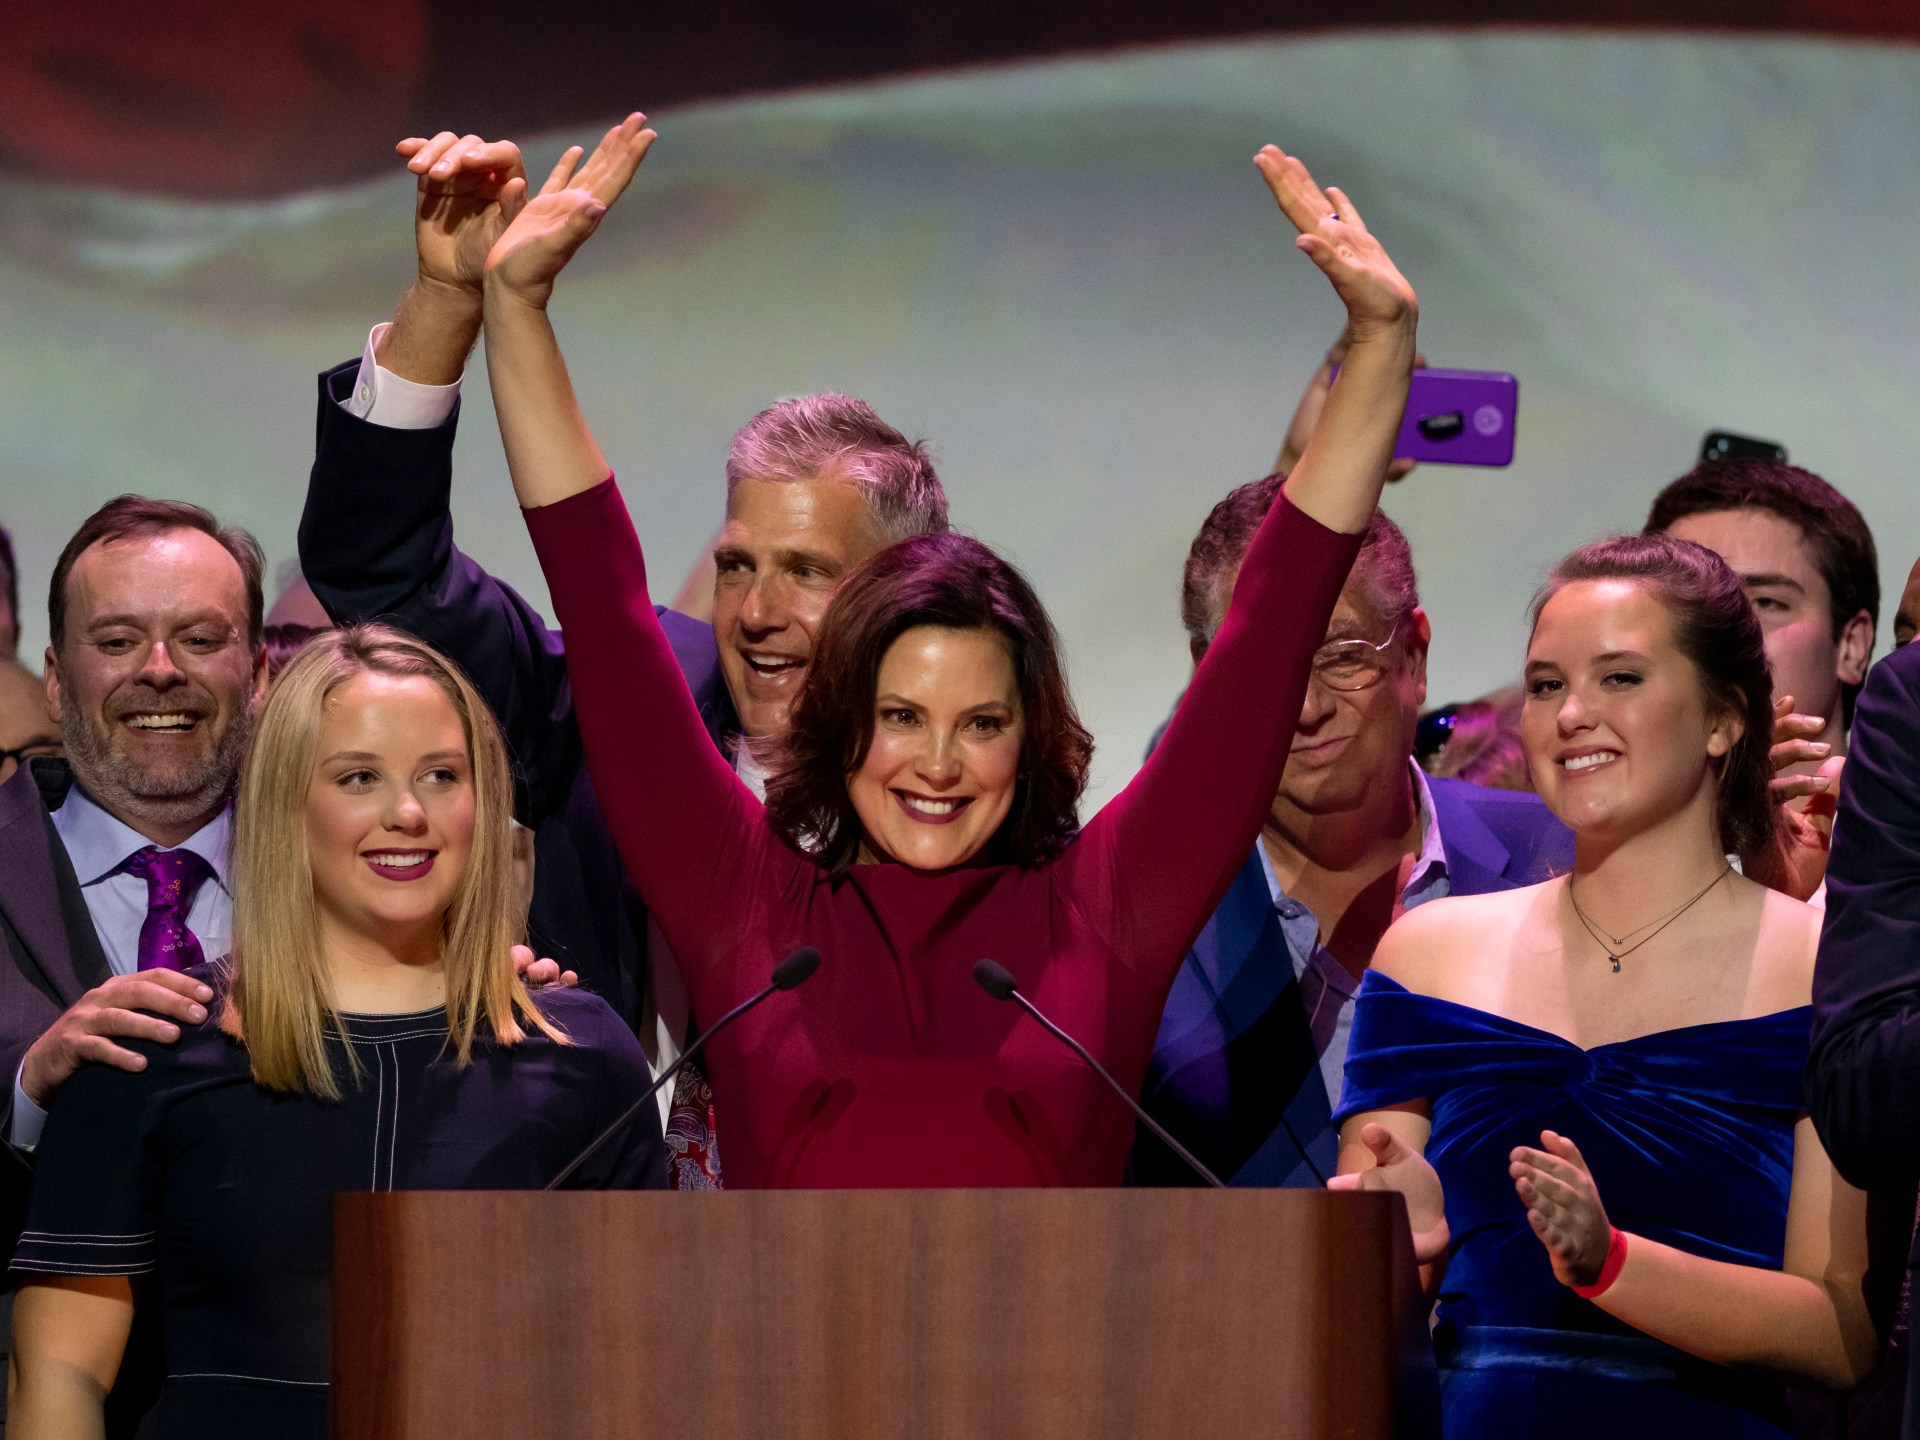 Gretchen Whitmer gives her acceptance speech after being elected the next governor of Michigan. The Michigan Democratic Party held its election night event at the Sound Board Theater at Motor City Casino in Detroit, November 6, 2018.